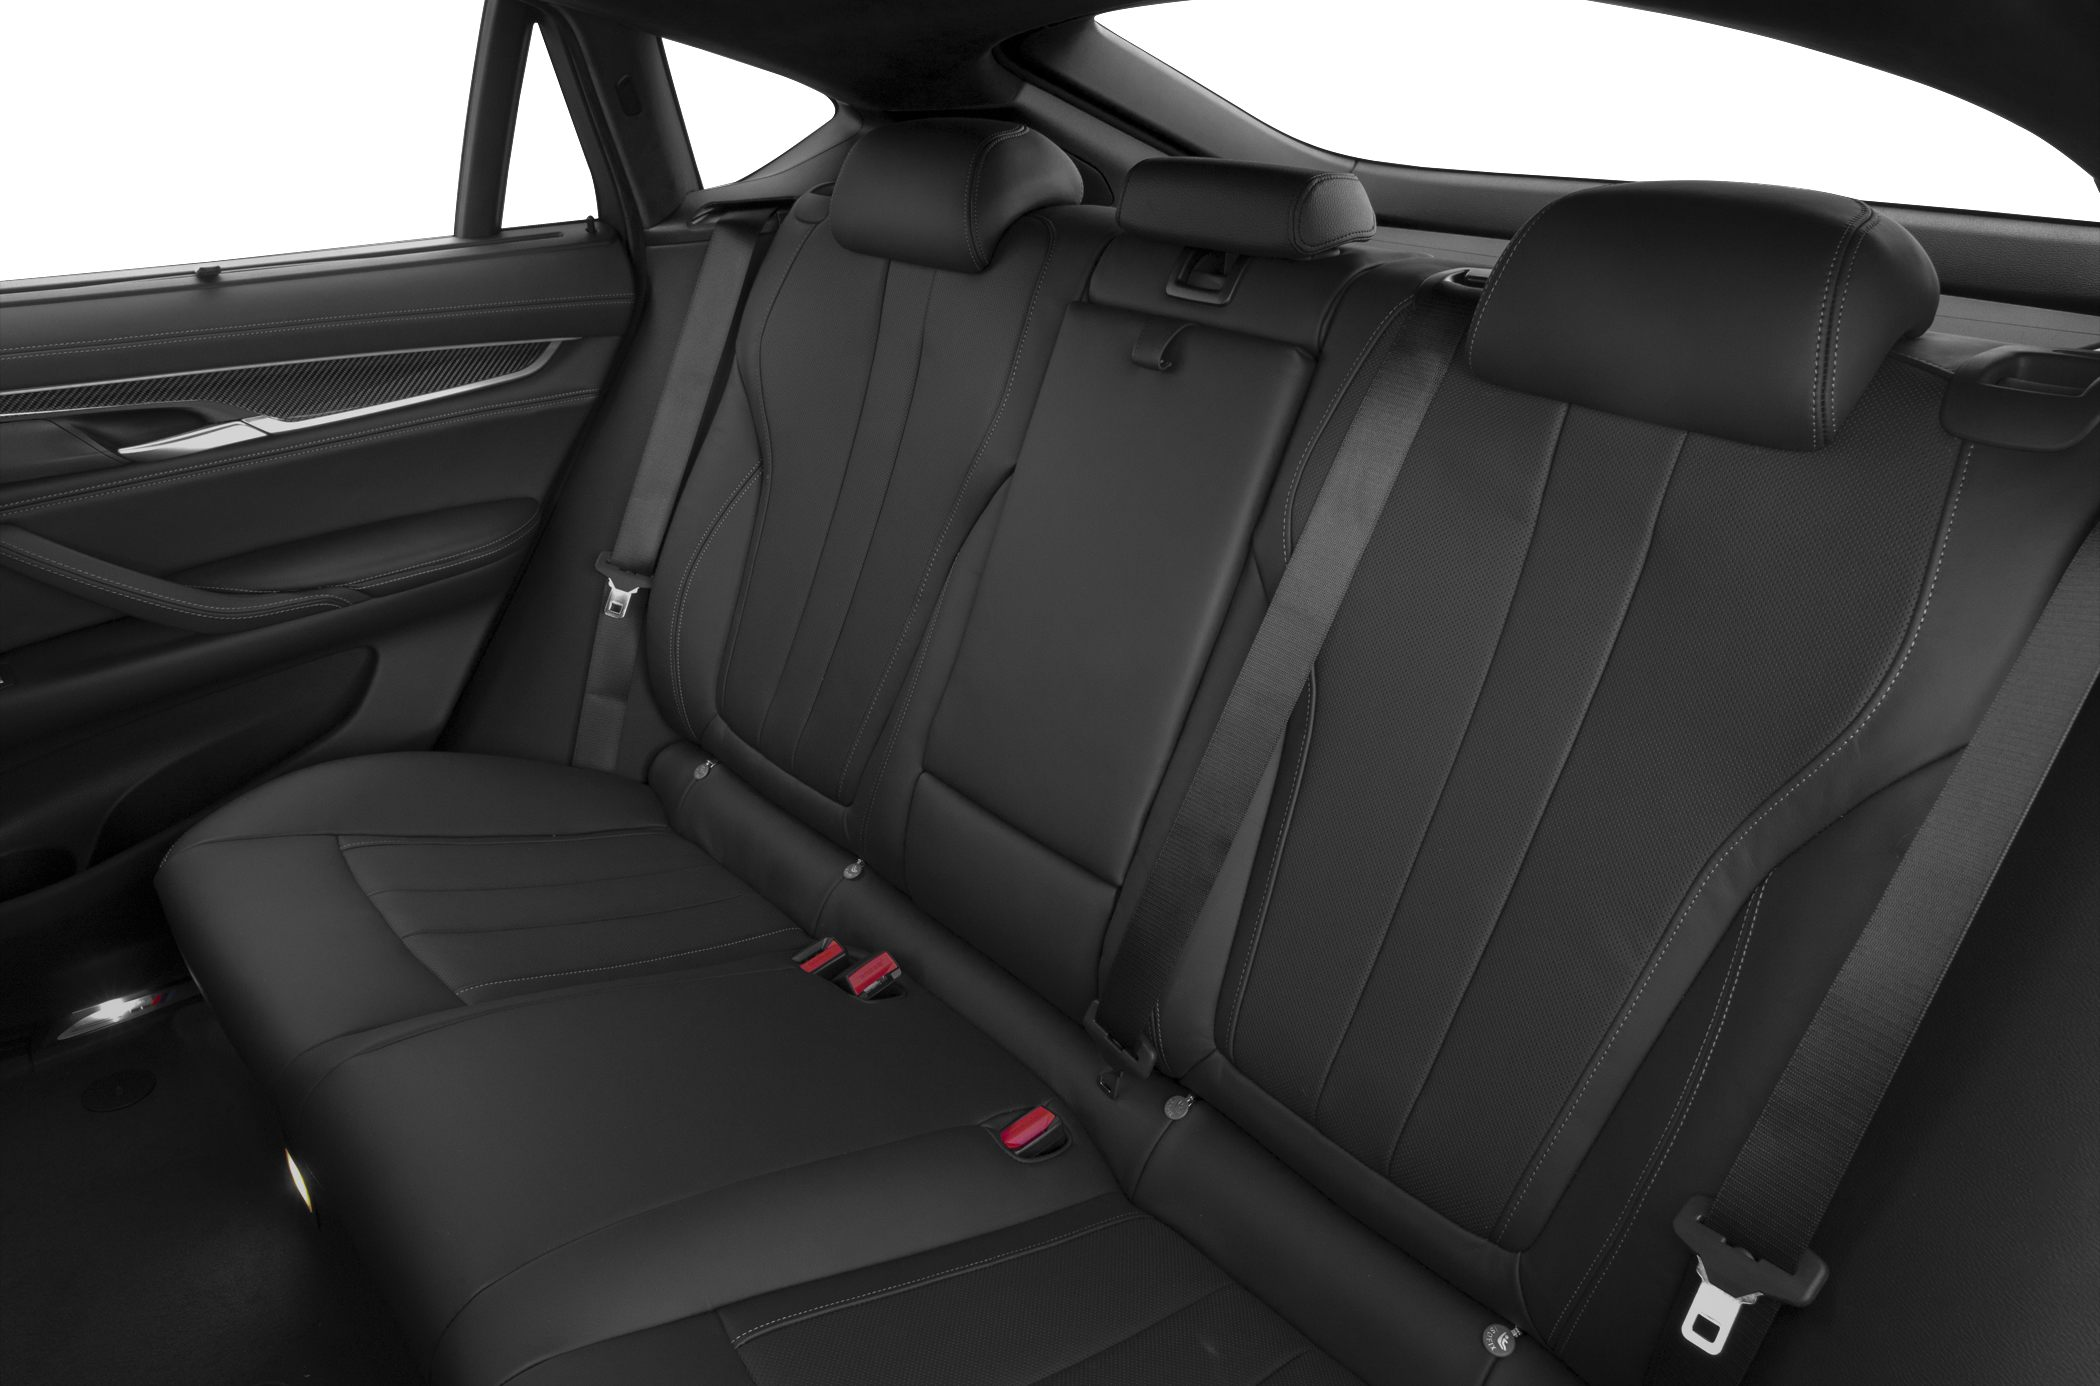 Bmw X6 Seating Capacity Brokeasshome Com